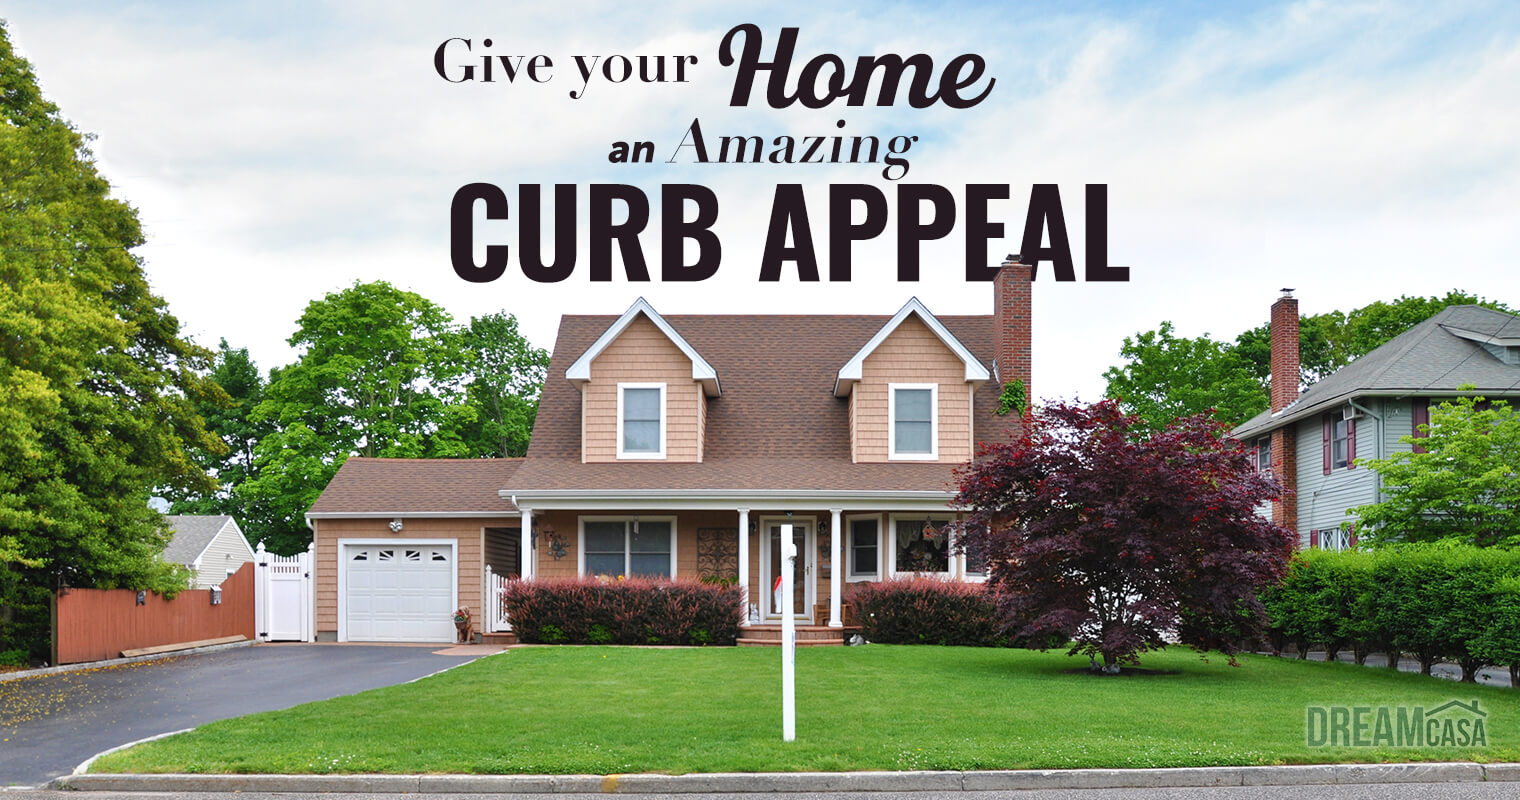 What Will Give Your Home the Most Curb Appeal?